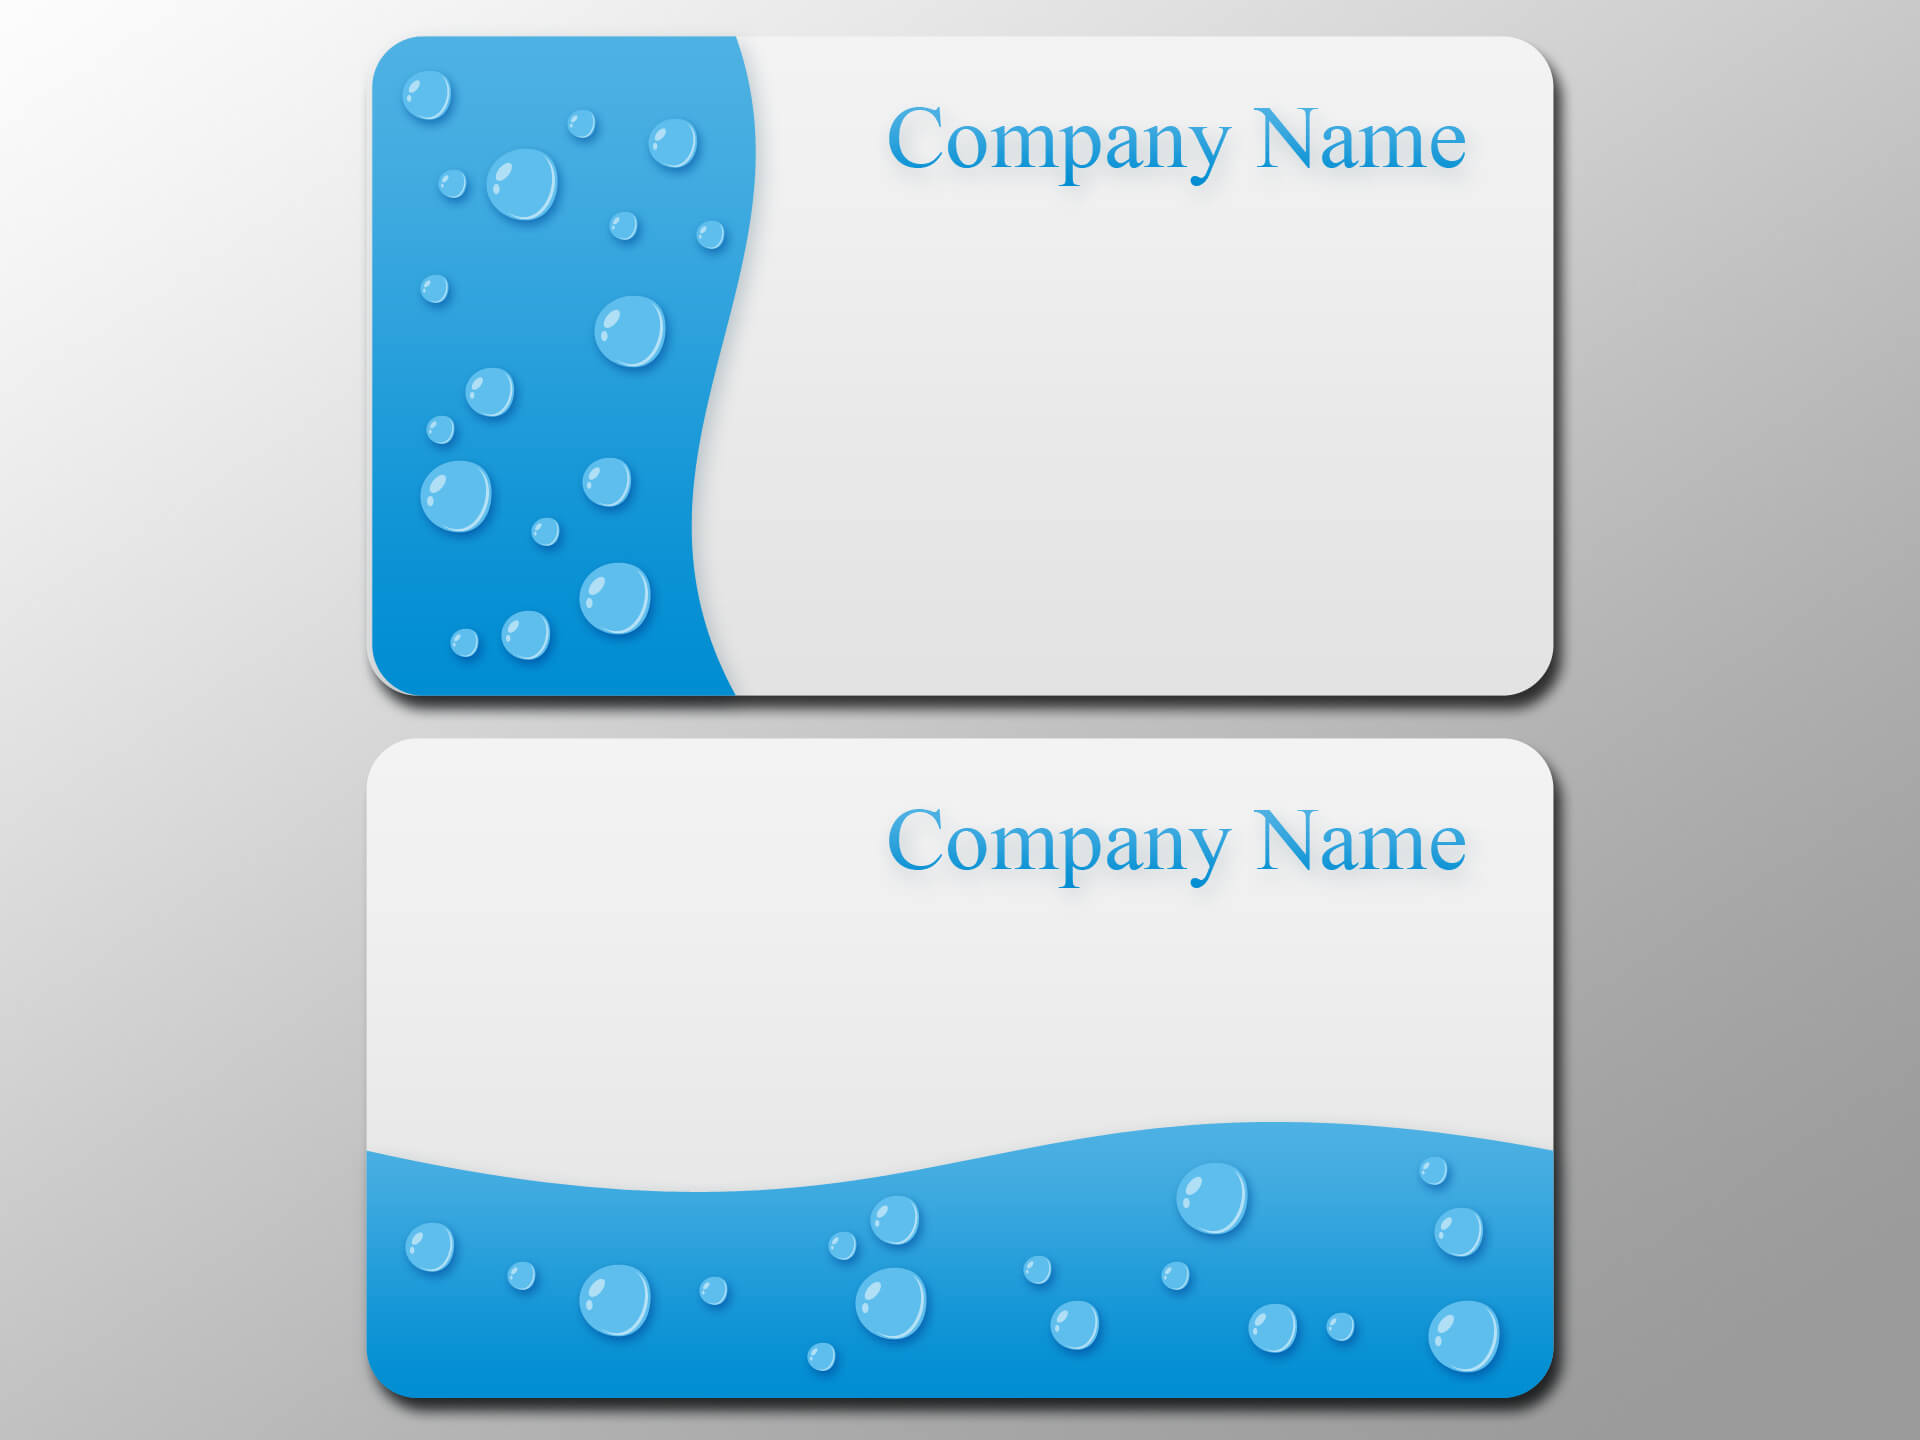 Business Card Template Photoshop - Blank Business Card With Business Card Template Size Photoshop